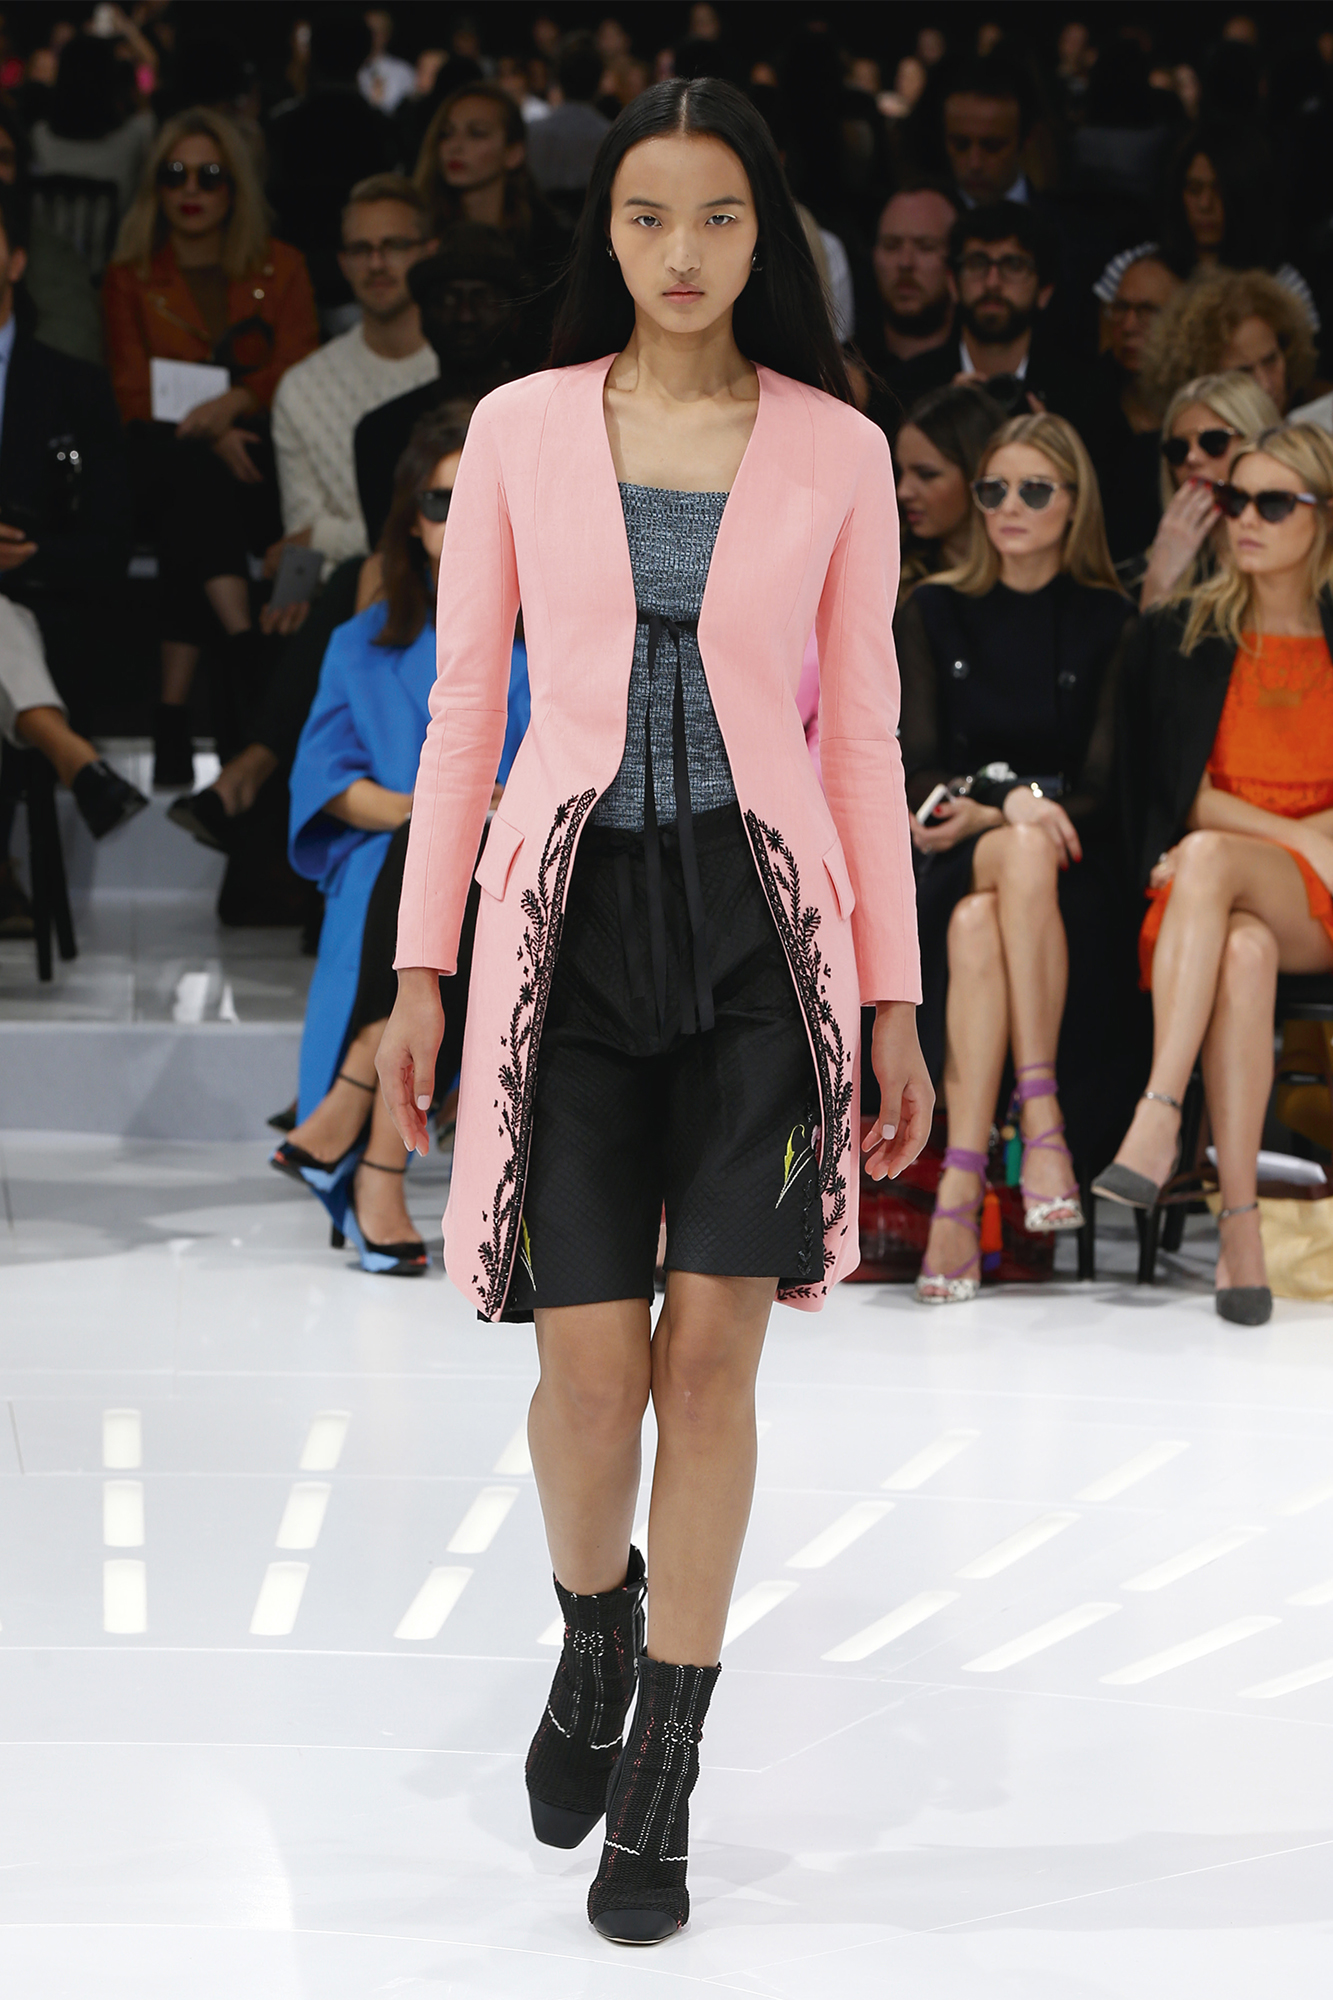 New Western Fashion Christian Dior Ready To Wear Dresses Spring Summer Collection 2015 (38)